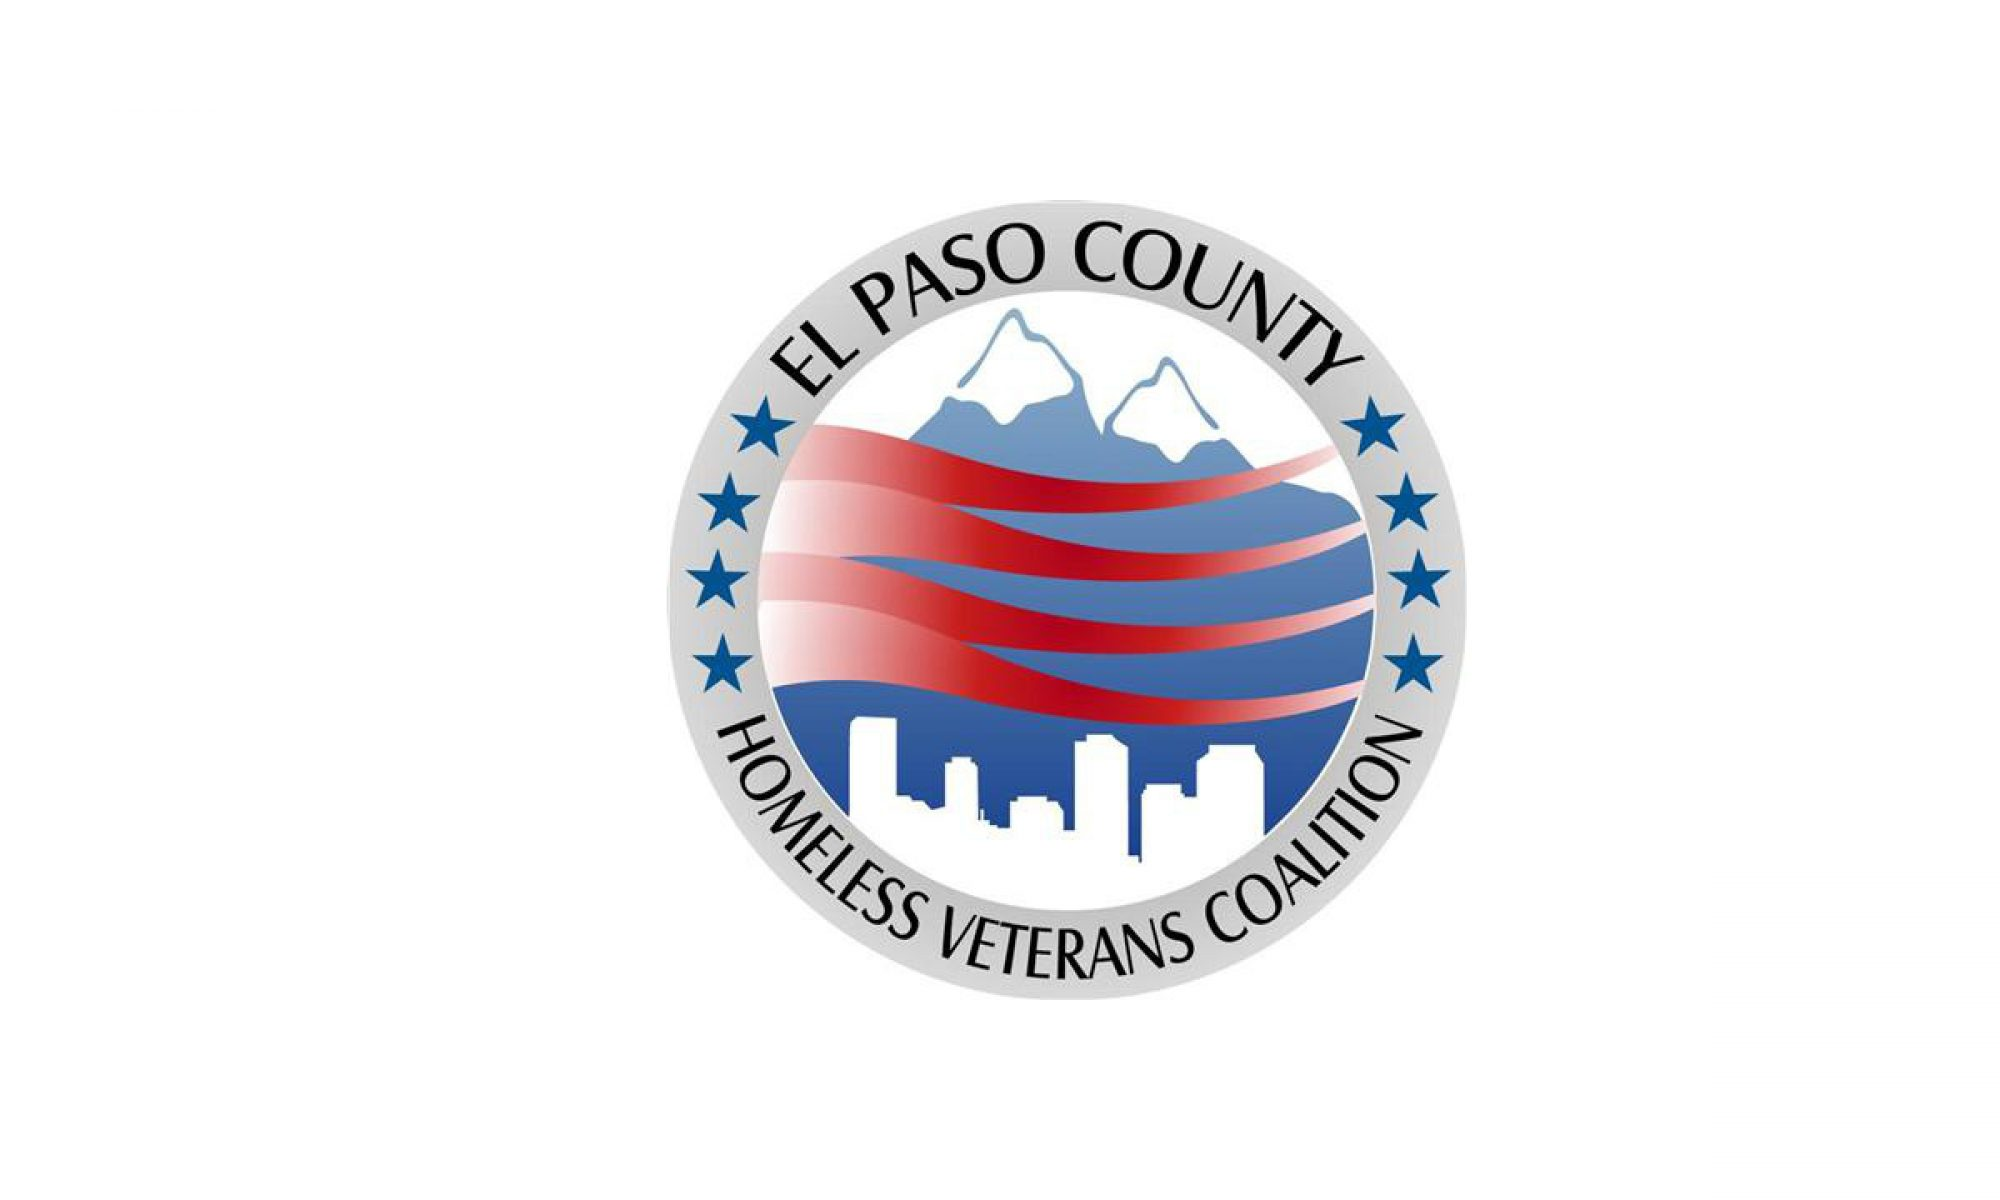 El Paso County Homeless Veterans Coalition